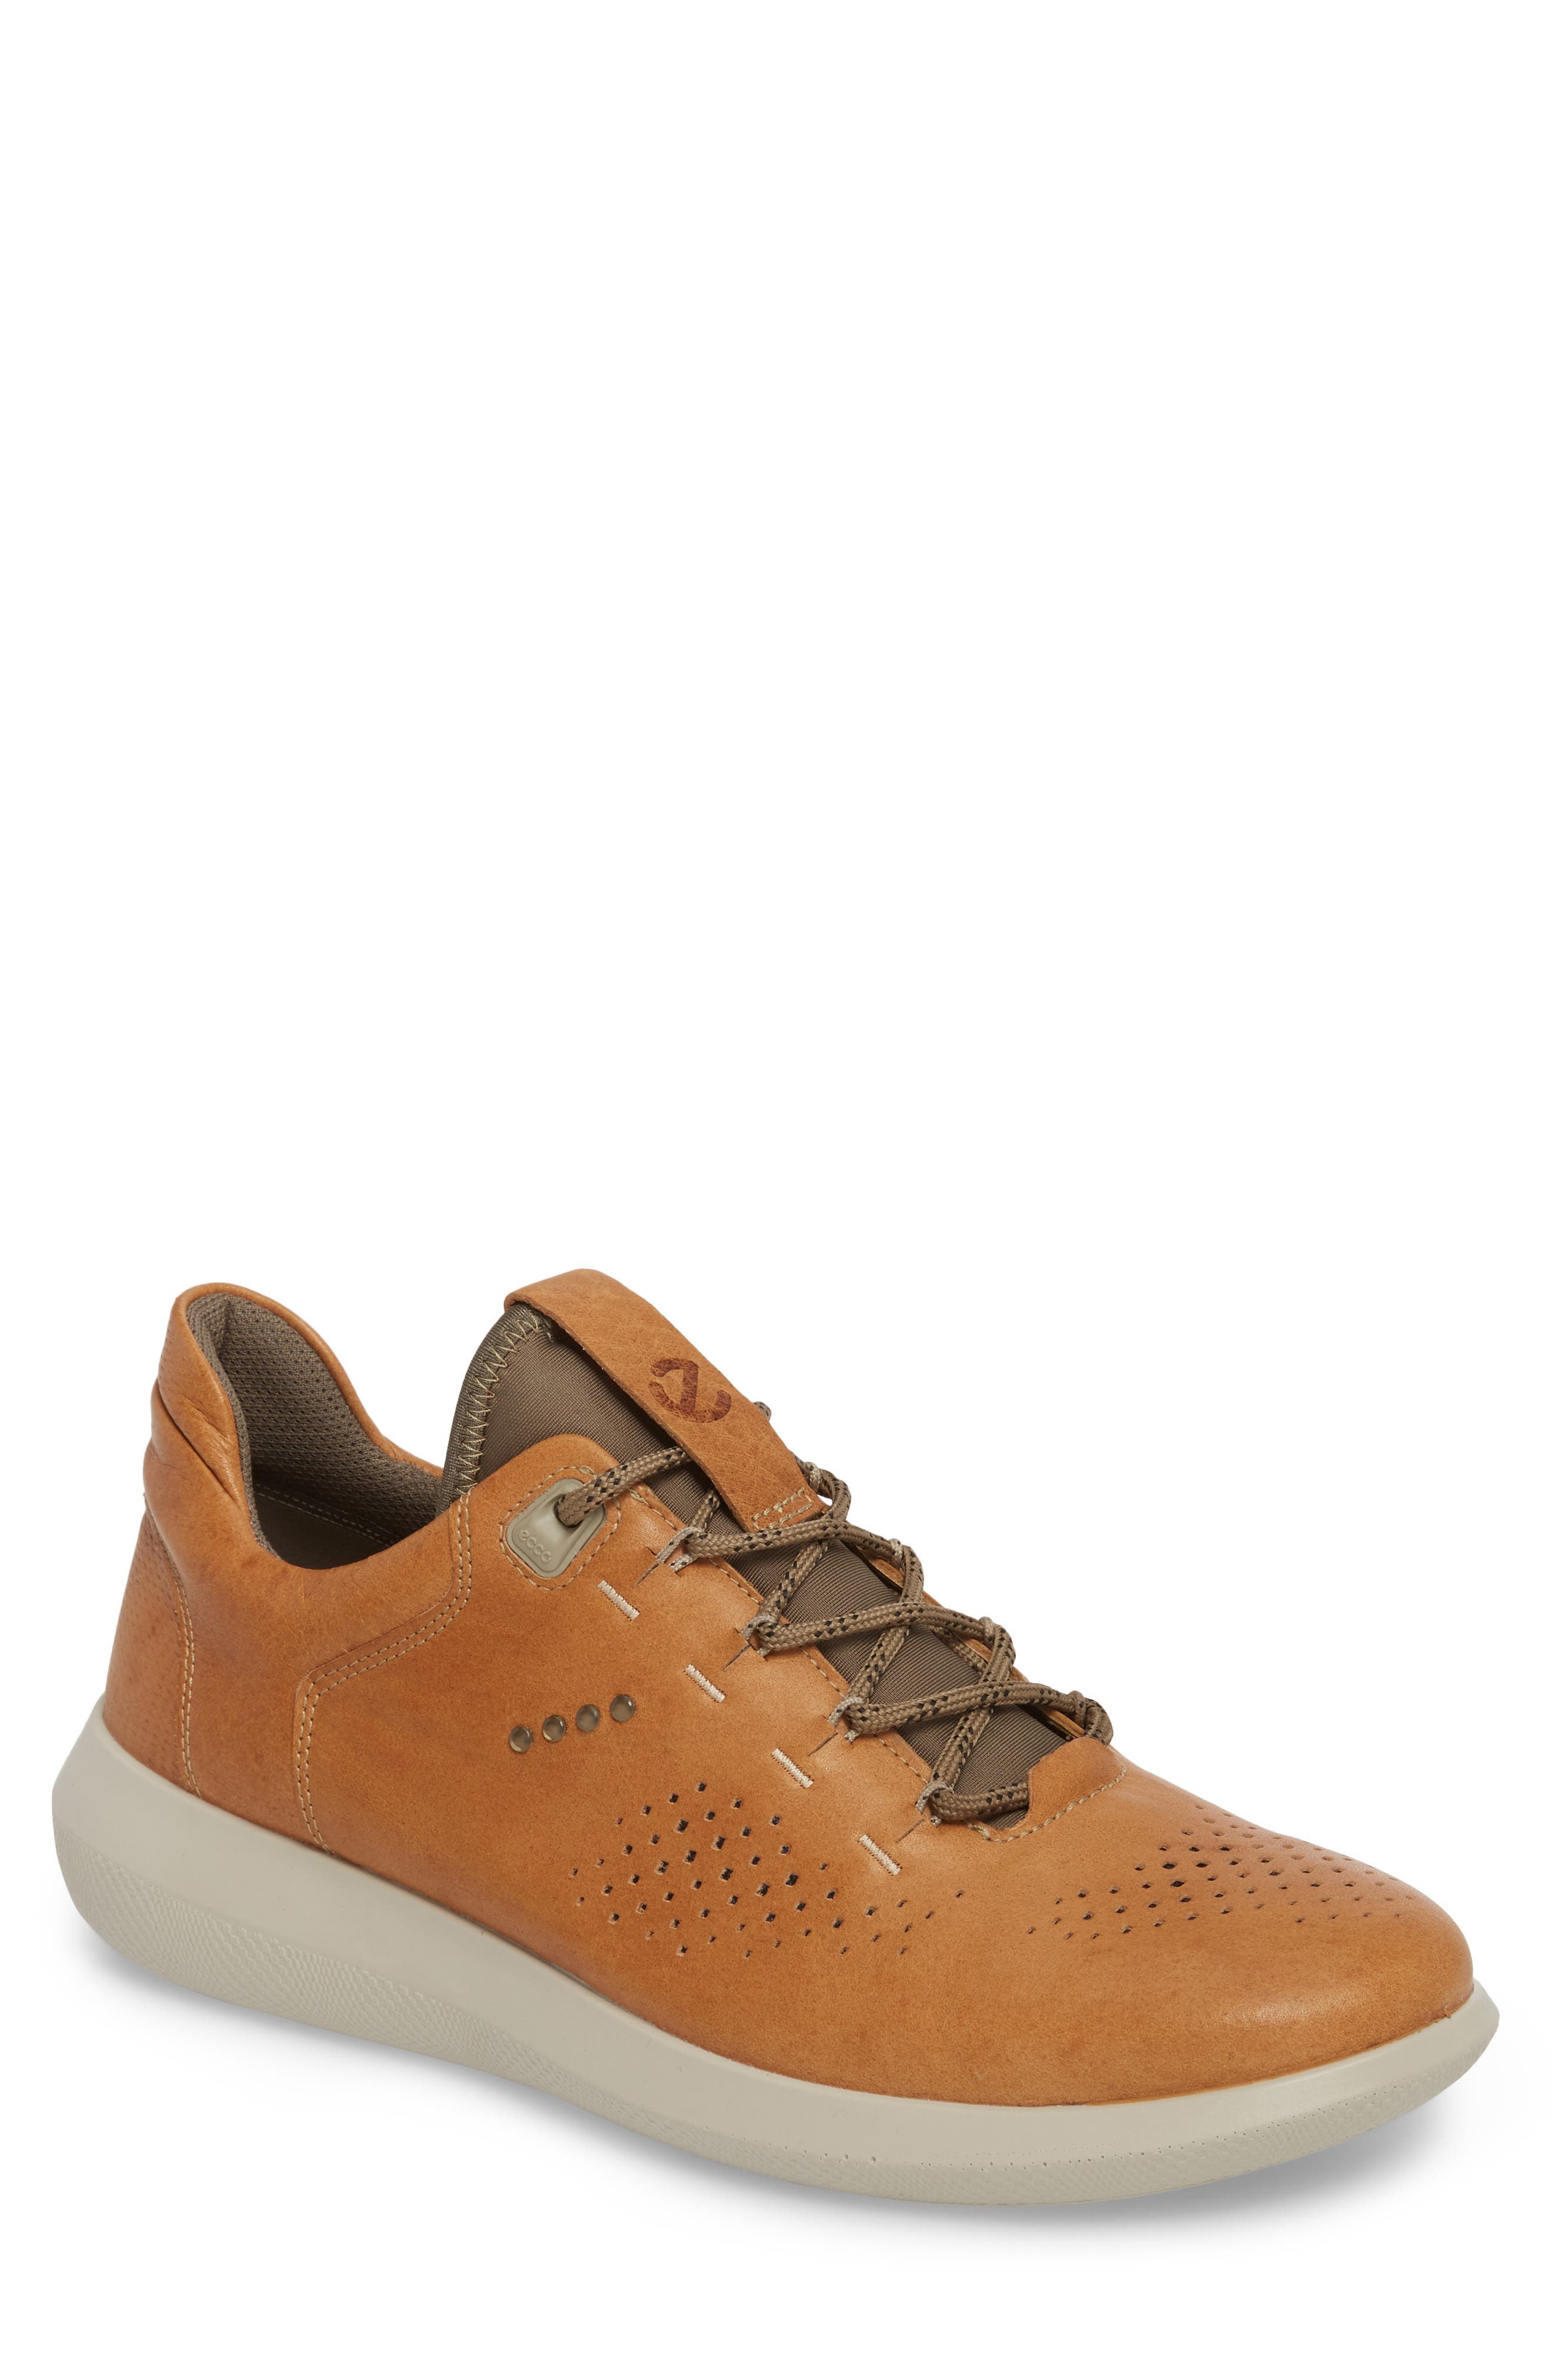 Scinapse Sneaker,                             Main thumbnail 1, color,                             Brown Leather